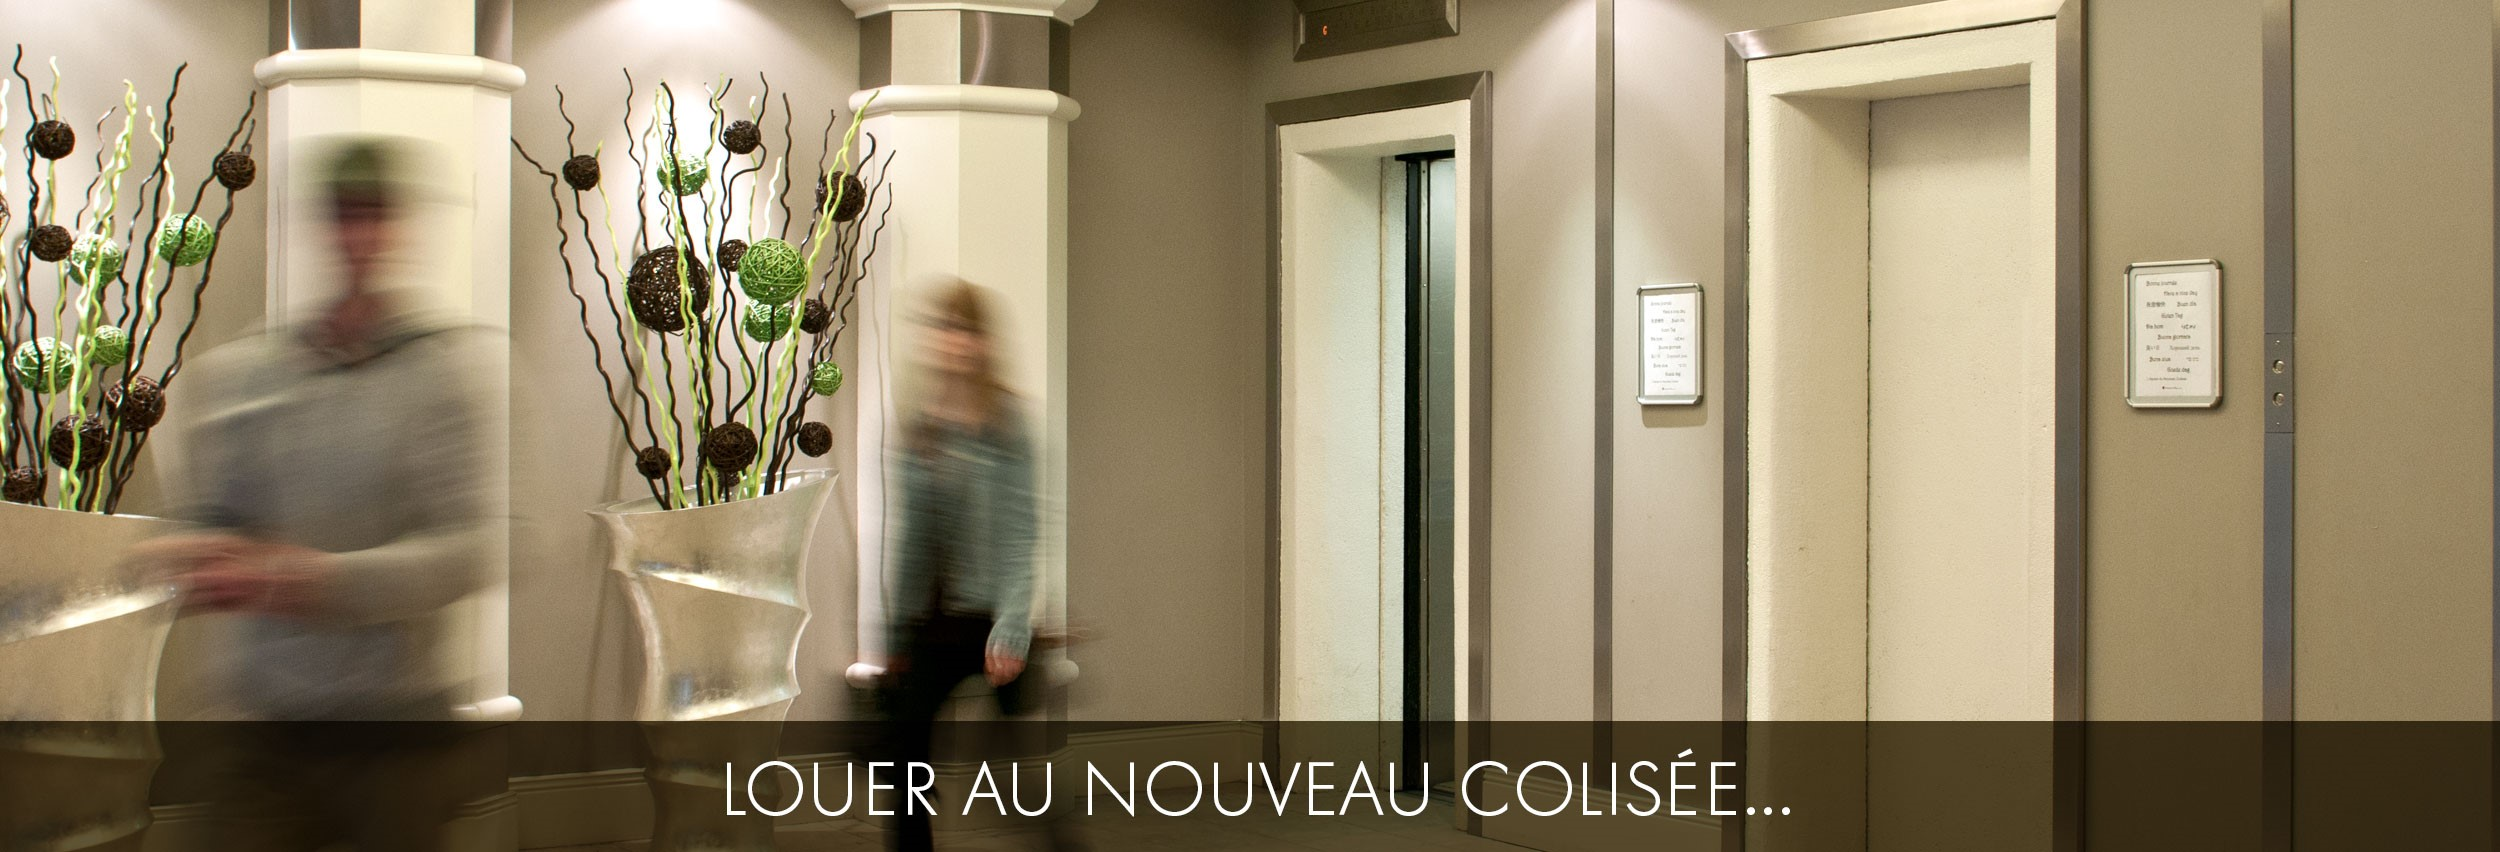 1 bedroom Apartments for rent in Montreal (Downtown) at Nouveau Colisee - Photo 03 - RentQuebecApartments – L23169